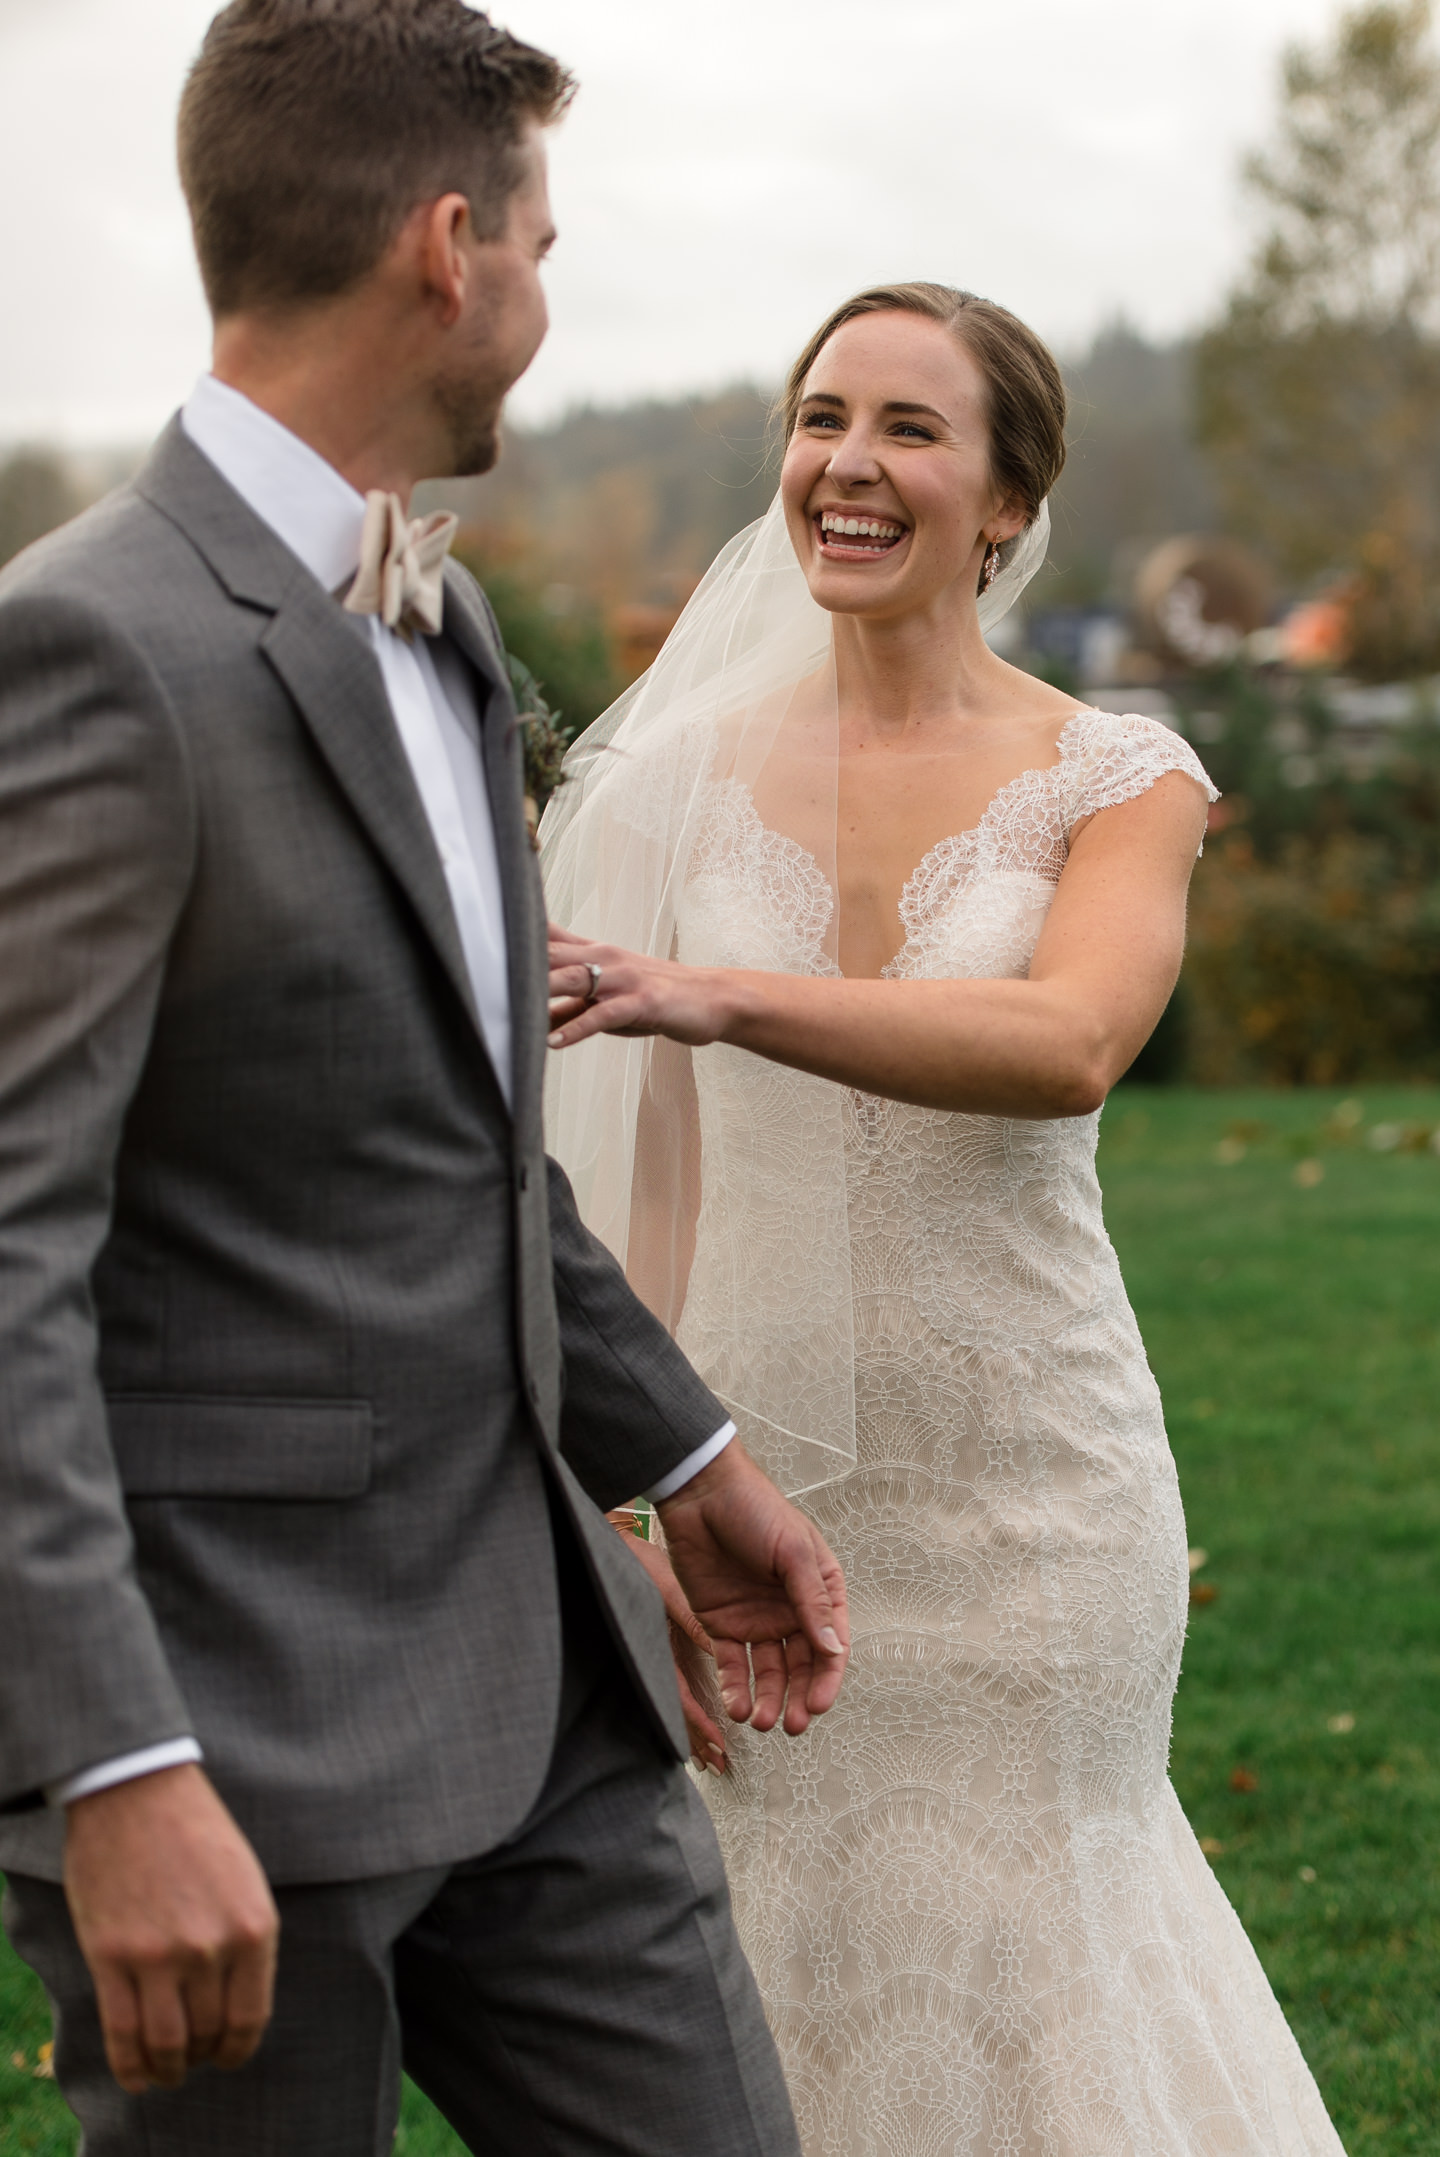 Bride and Groom Happy First Look at Dairyland